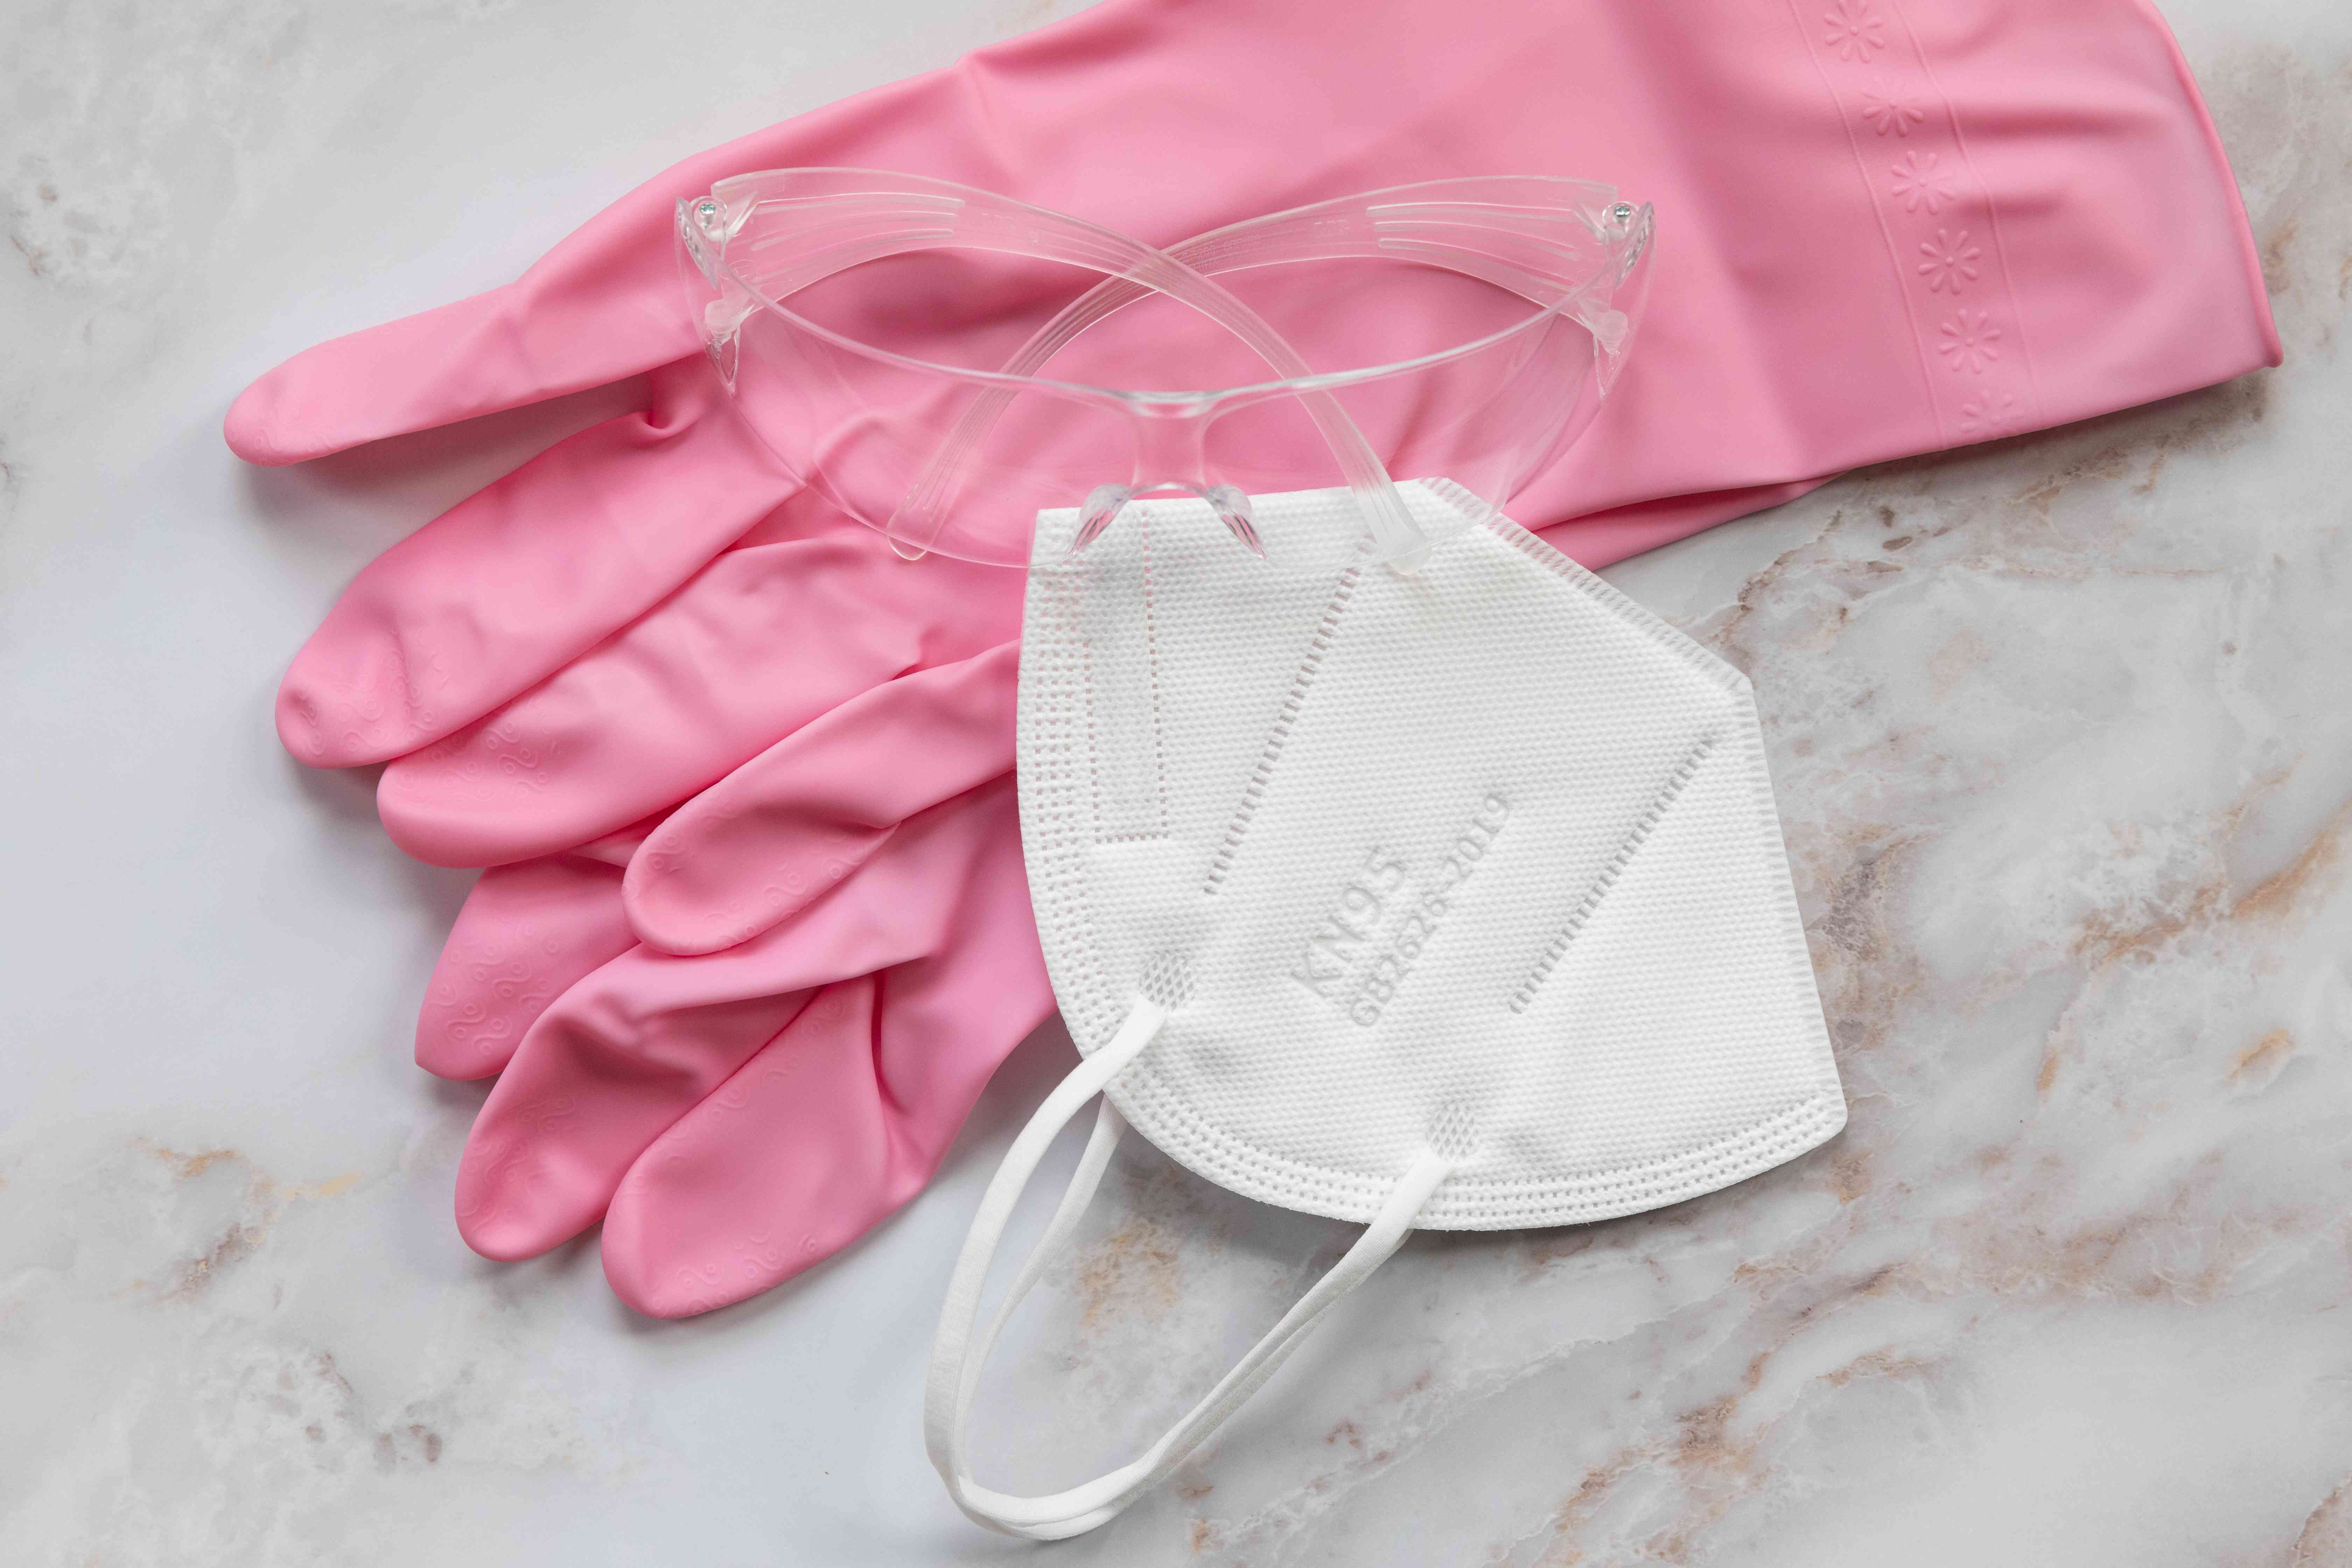 Pink gloves next to protective eyewear and white mask